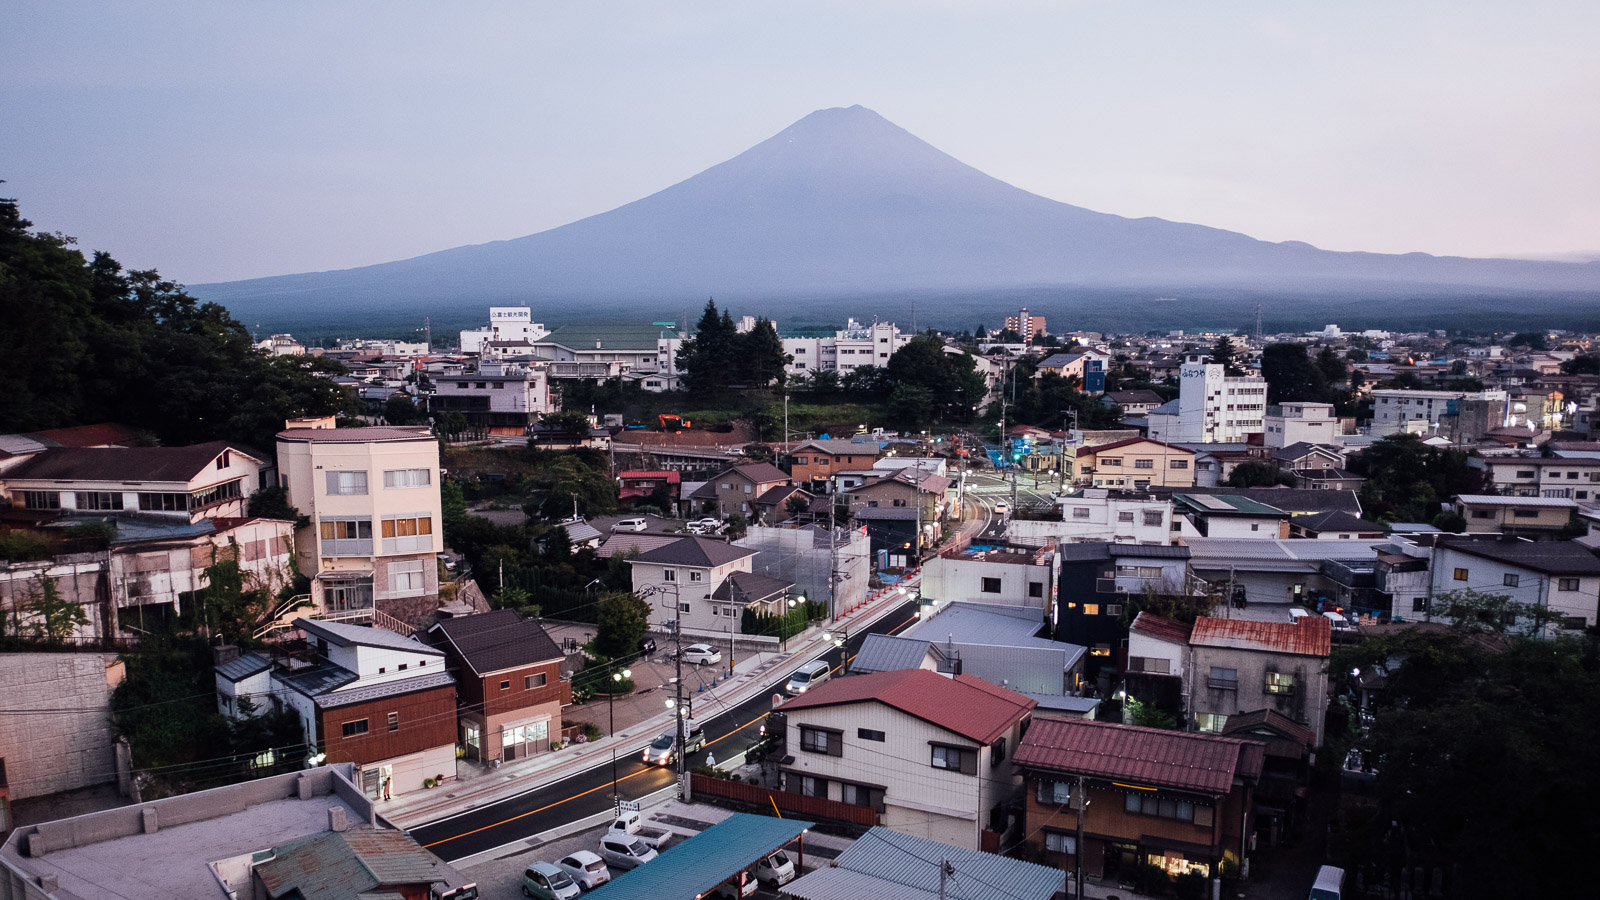 View of Mt. Fuji from Fujikawaguchiko